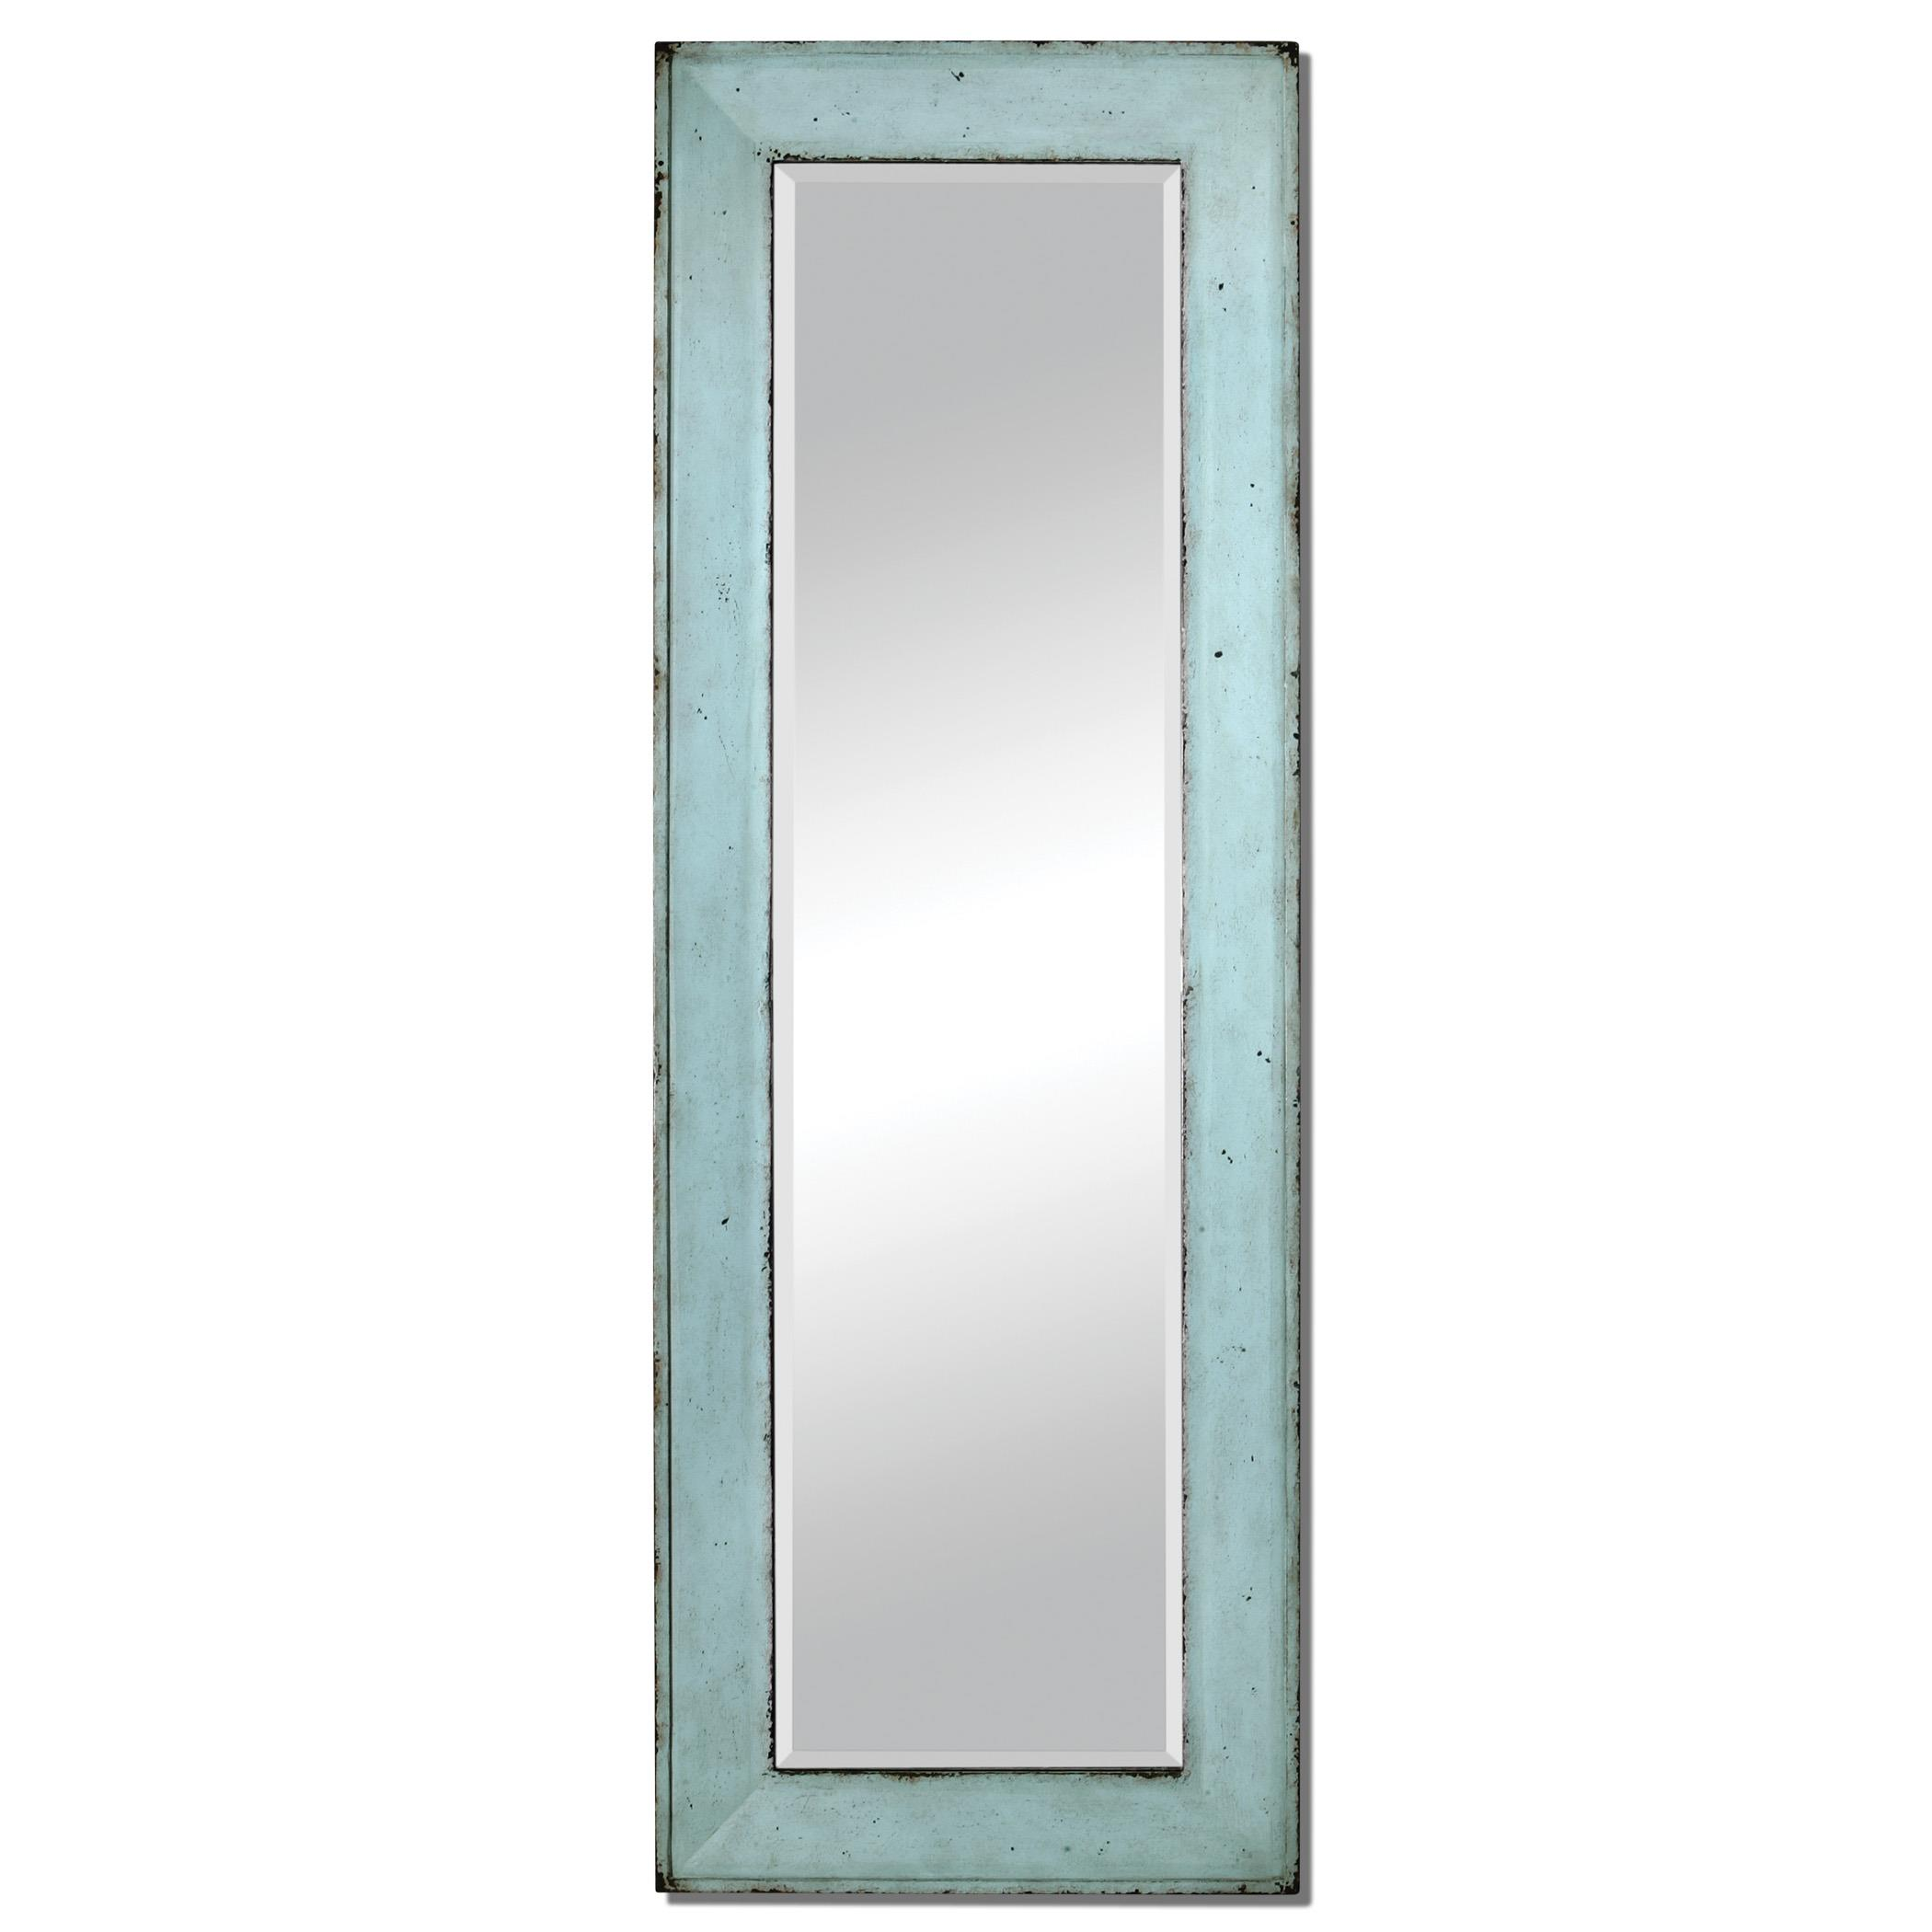 Uttermost Mirrors Chasity Light Blue Leaner Mirror - Item Number: 09523